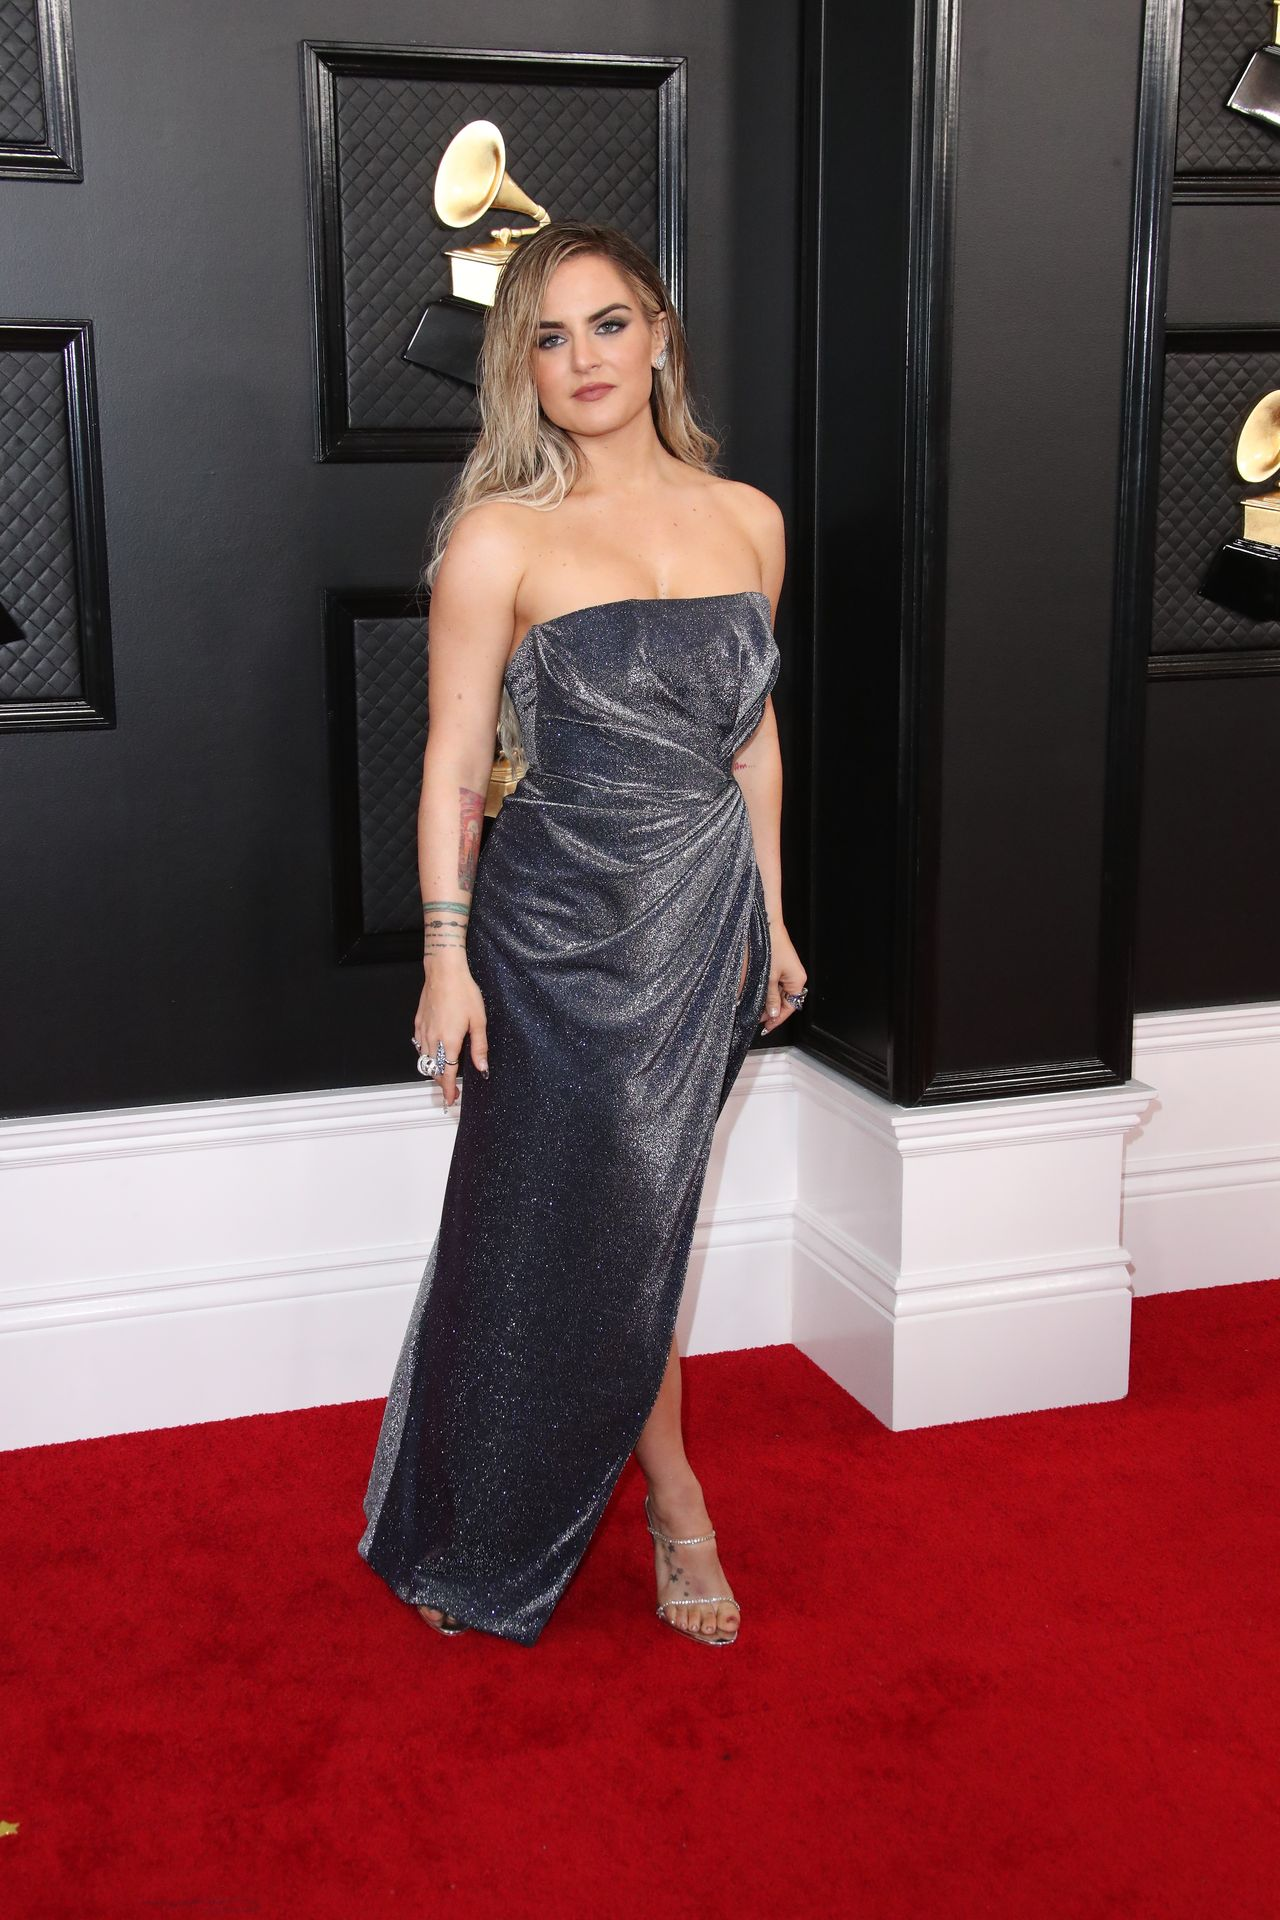 Jojo Shows Her Legs And Cleavage At The 62nd Annual Grammy Awards 0032